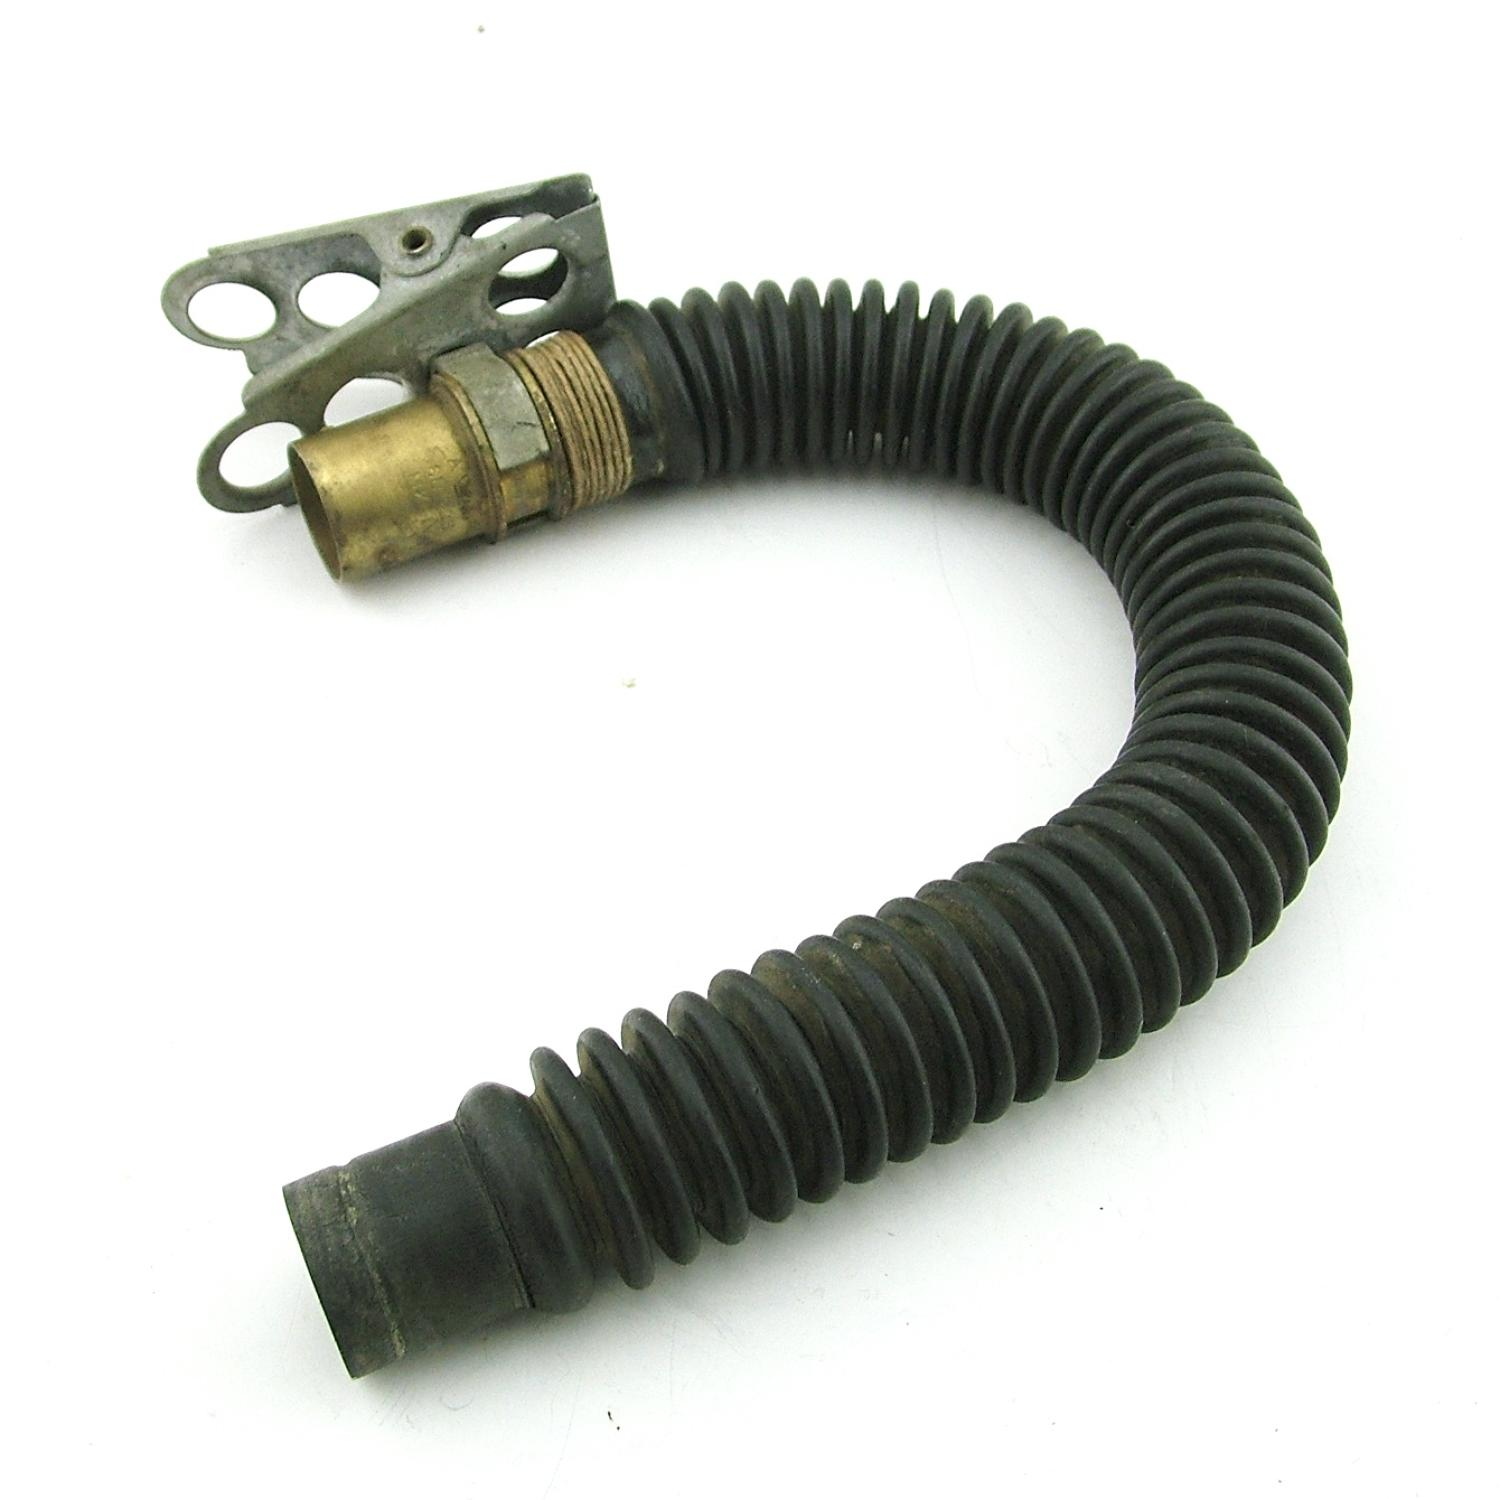 RAF oxygen mask tube / connectors - early